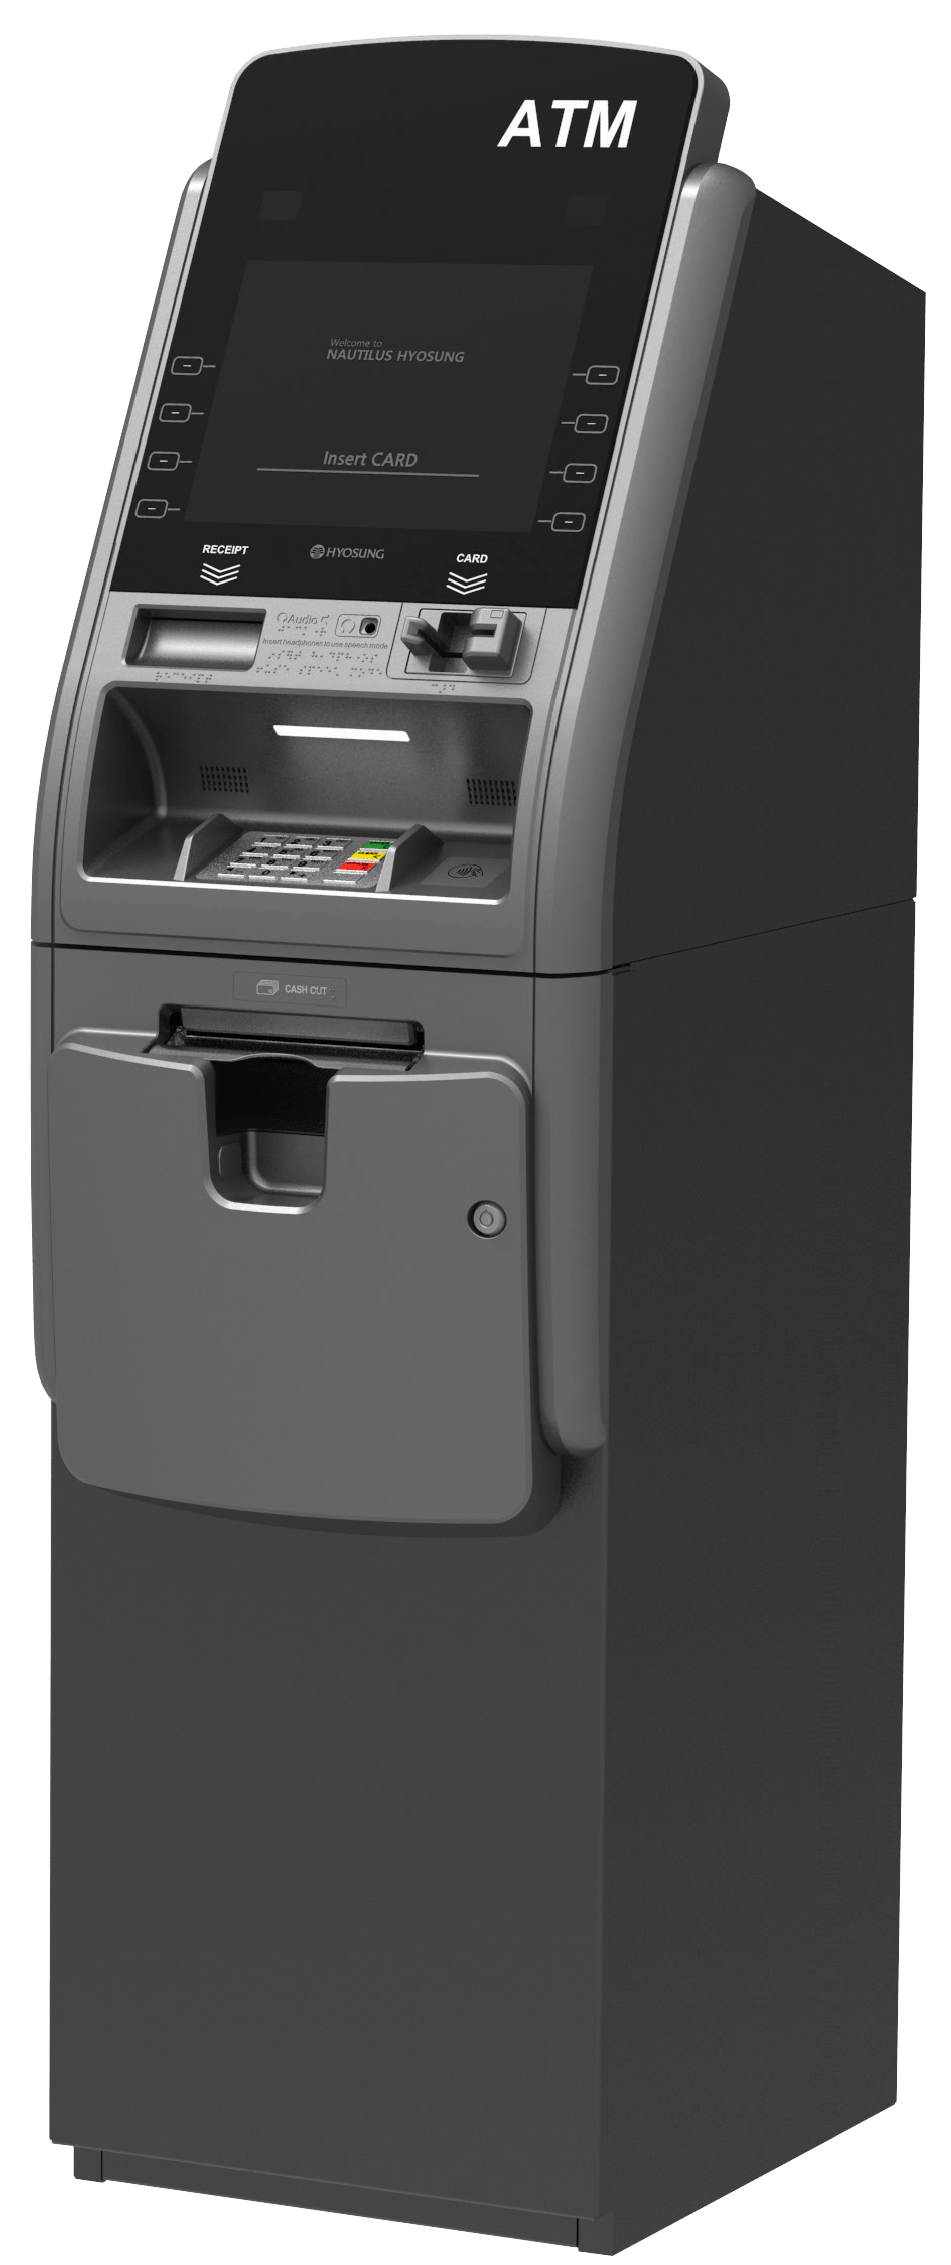 Turnkey ATM Managed Services with Hyosung Force Retail ATM Terminal